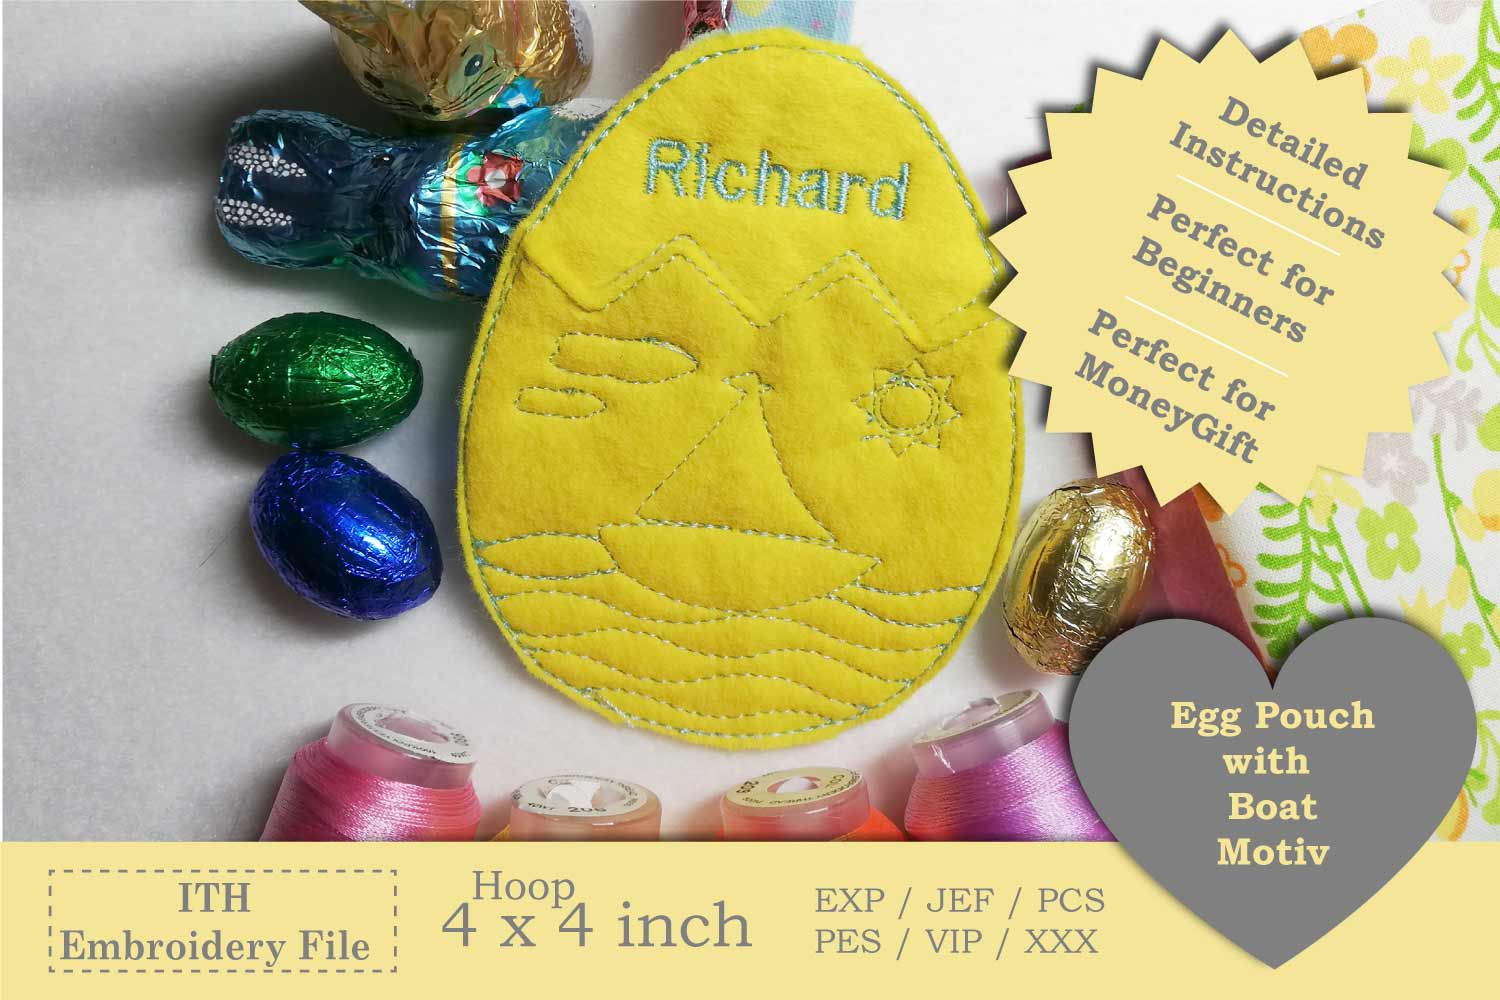 ITH - Egg Pouch with Sailboat Motive example image 1